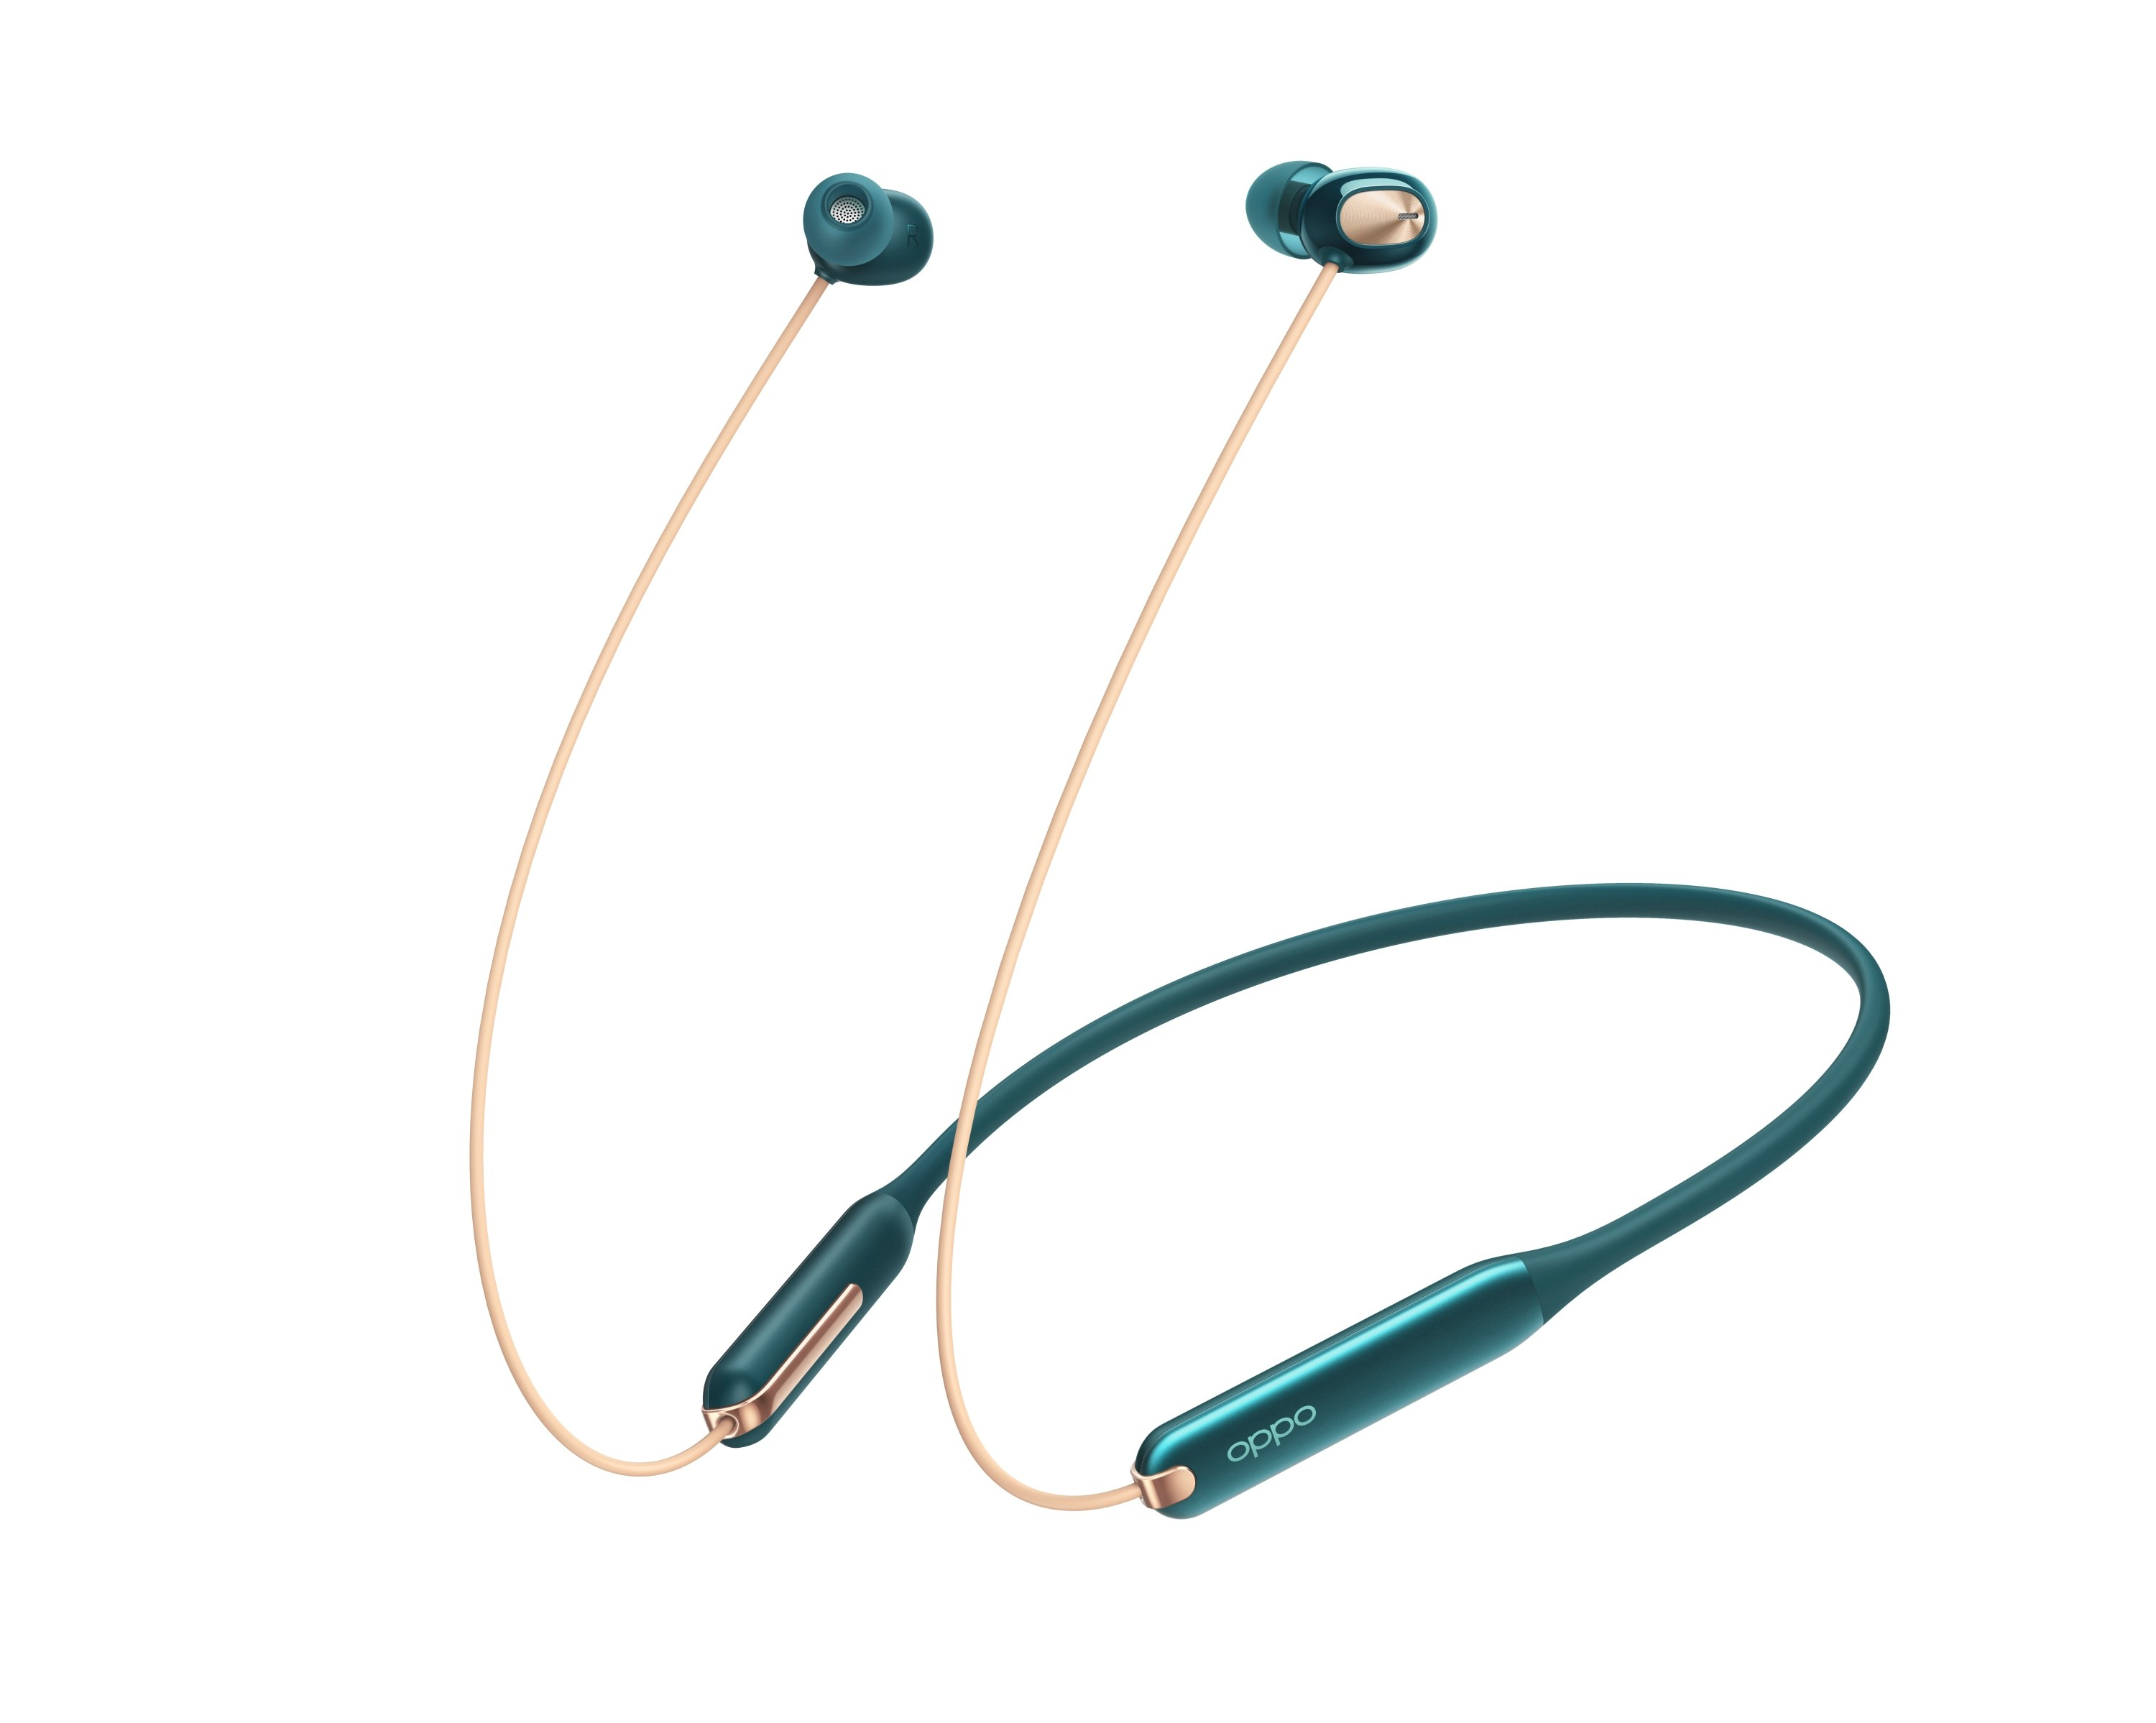 Oppo Enco W31 And Enco M31 Bluetooth Earphones Launched In India; Starts At ₹1,999